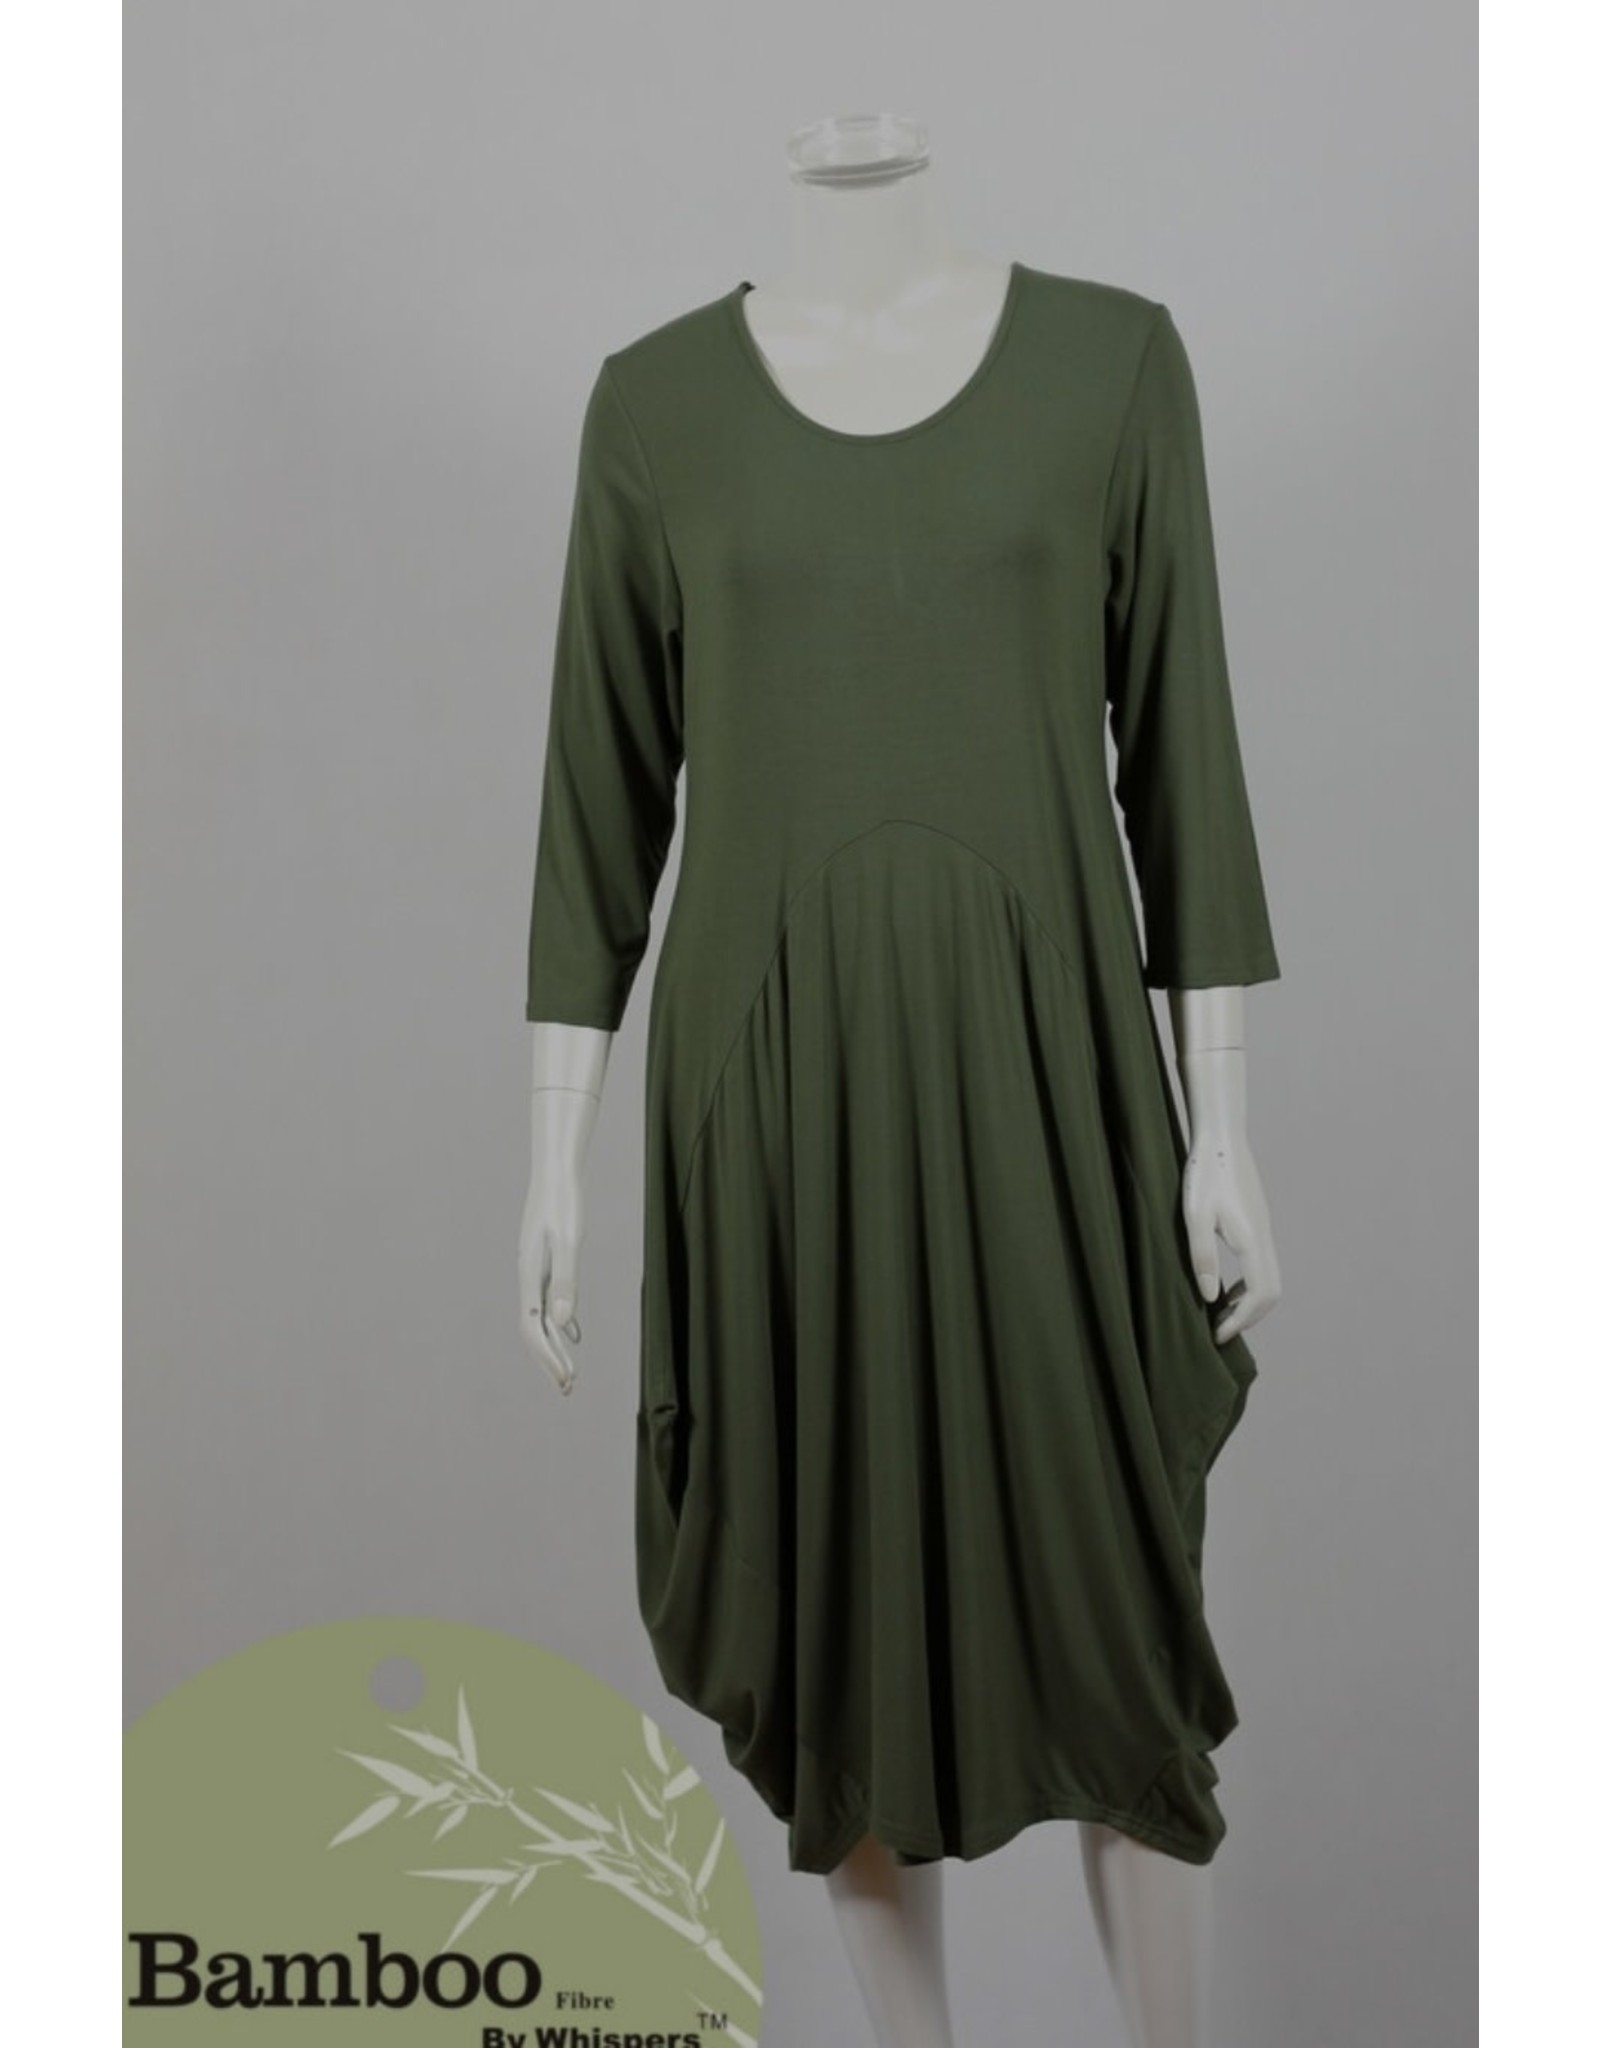 Bamboo By Whispers Bamboo 3/4 Sl Dress